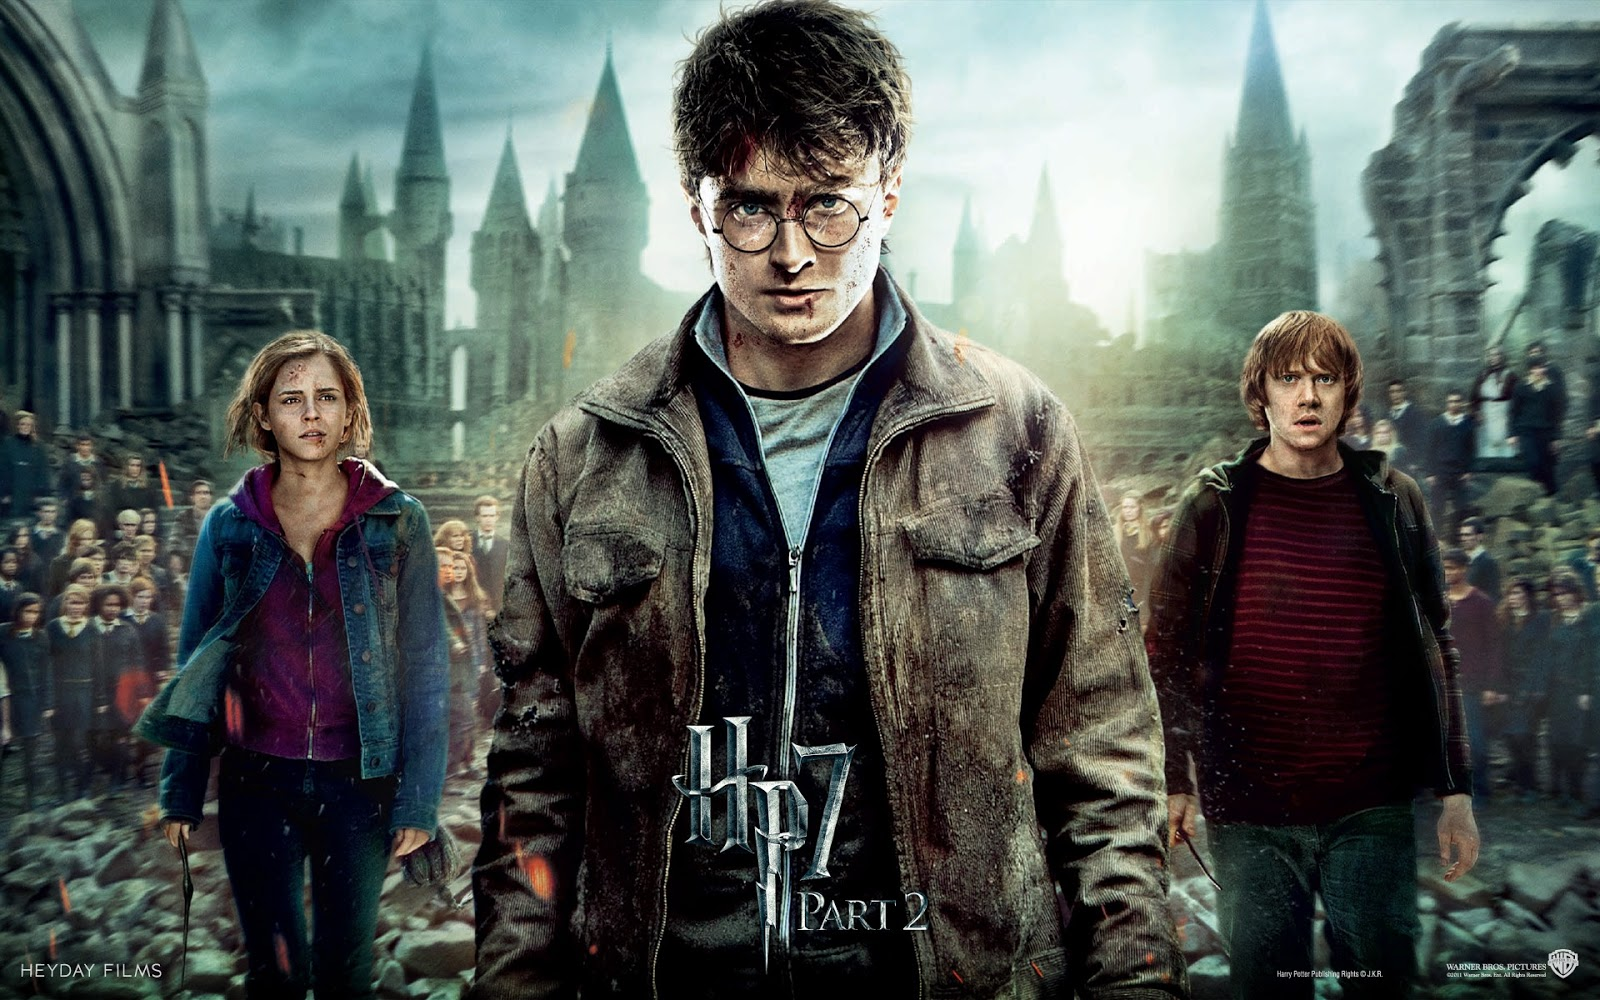 Harry Potter and the Deathly Hallows Movie Star Cast